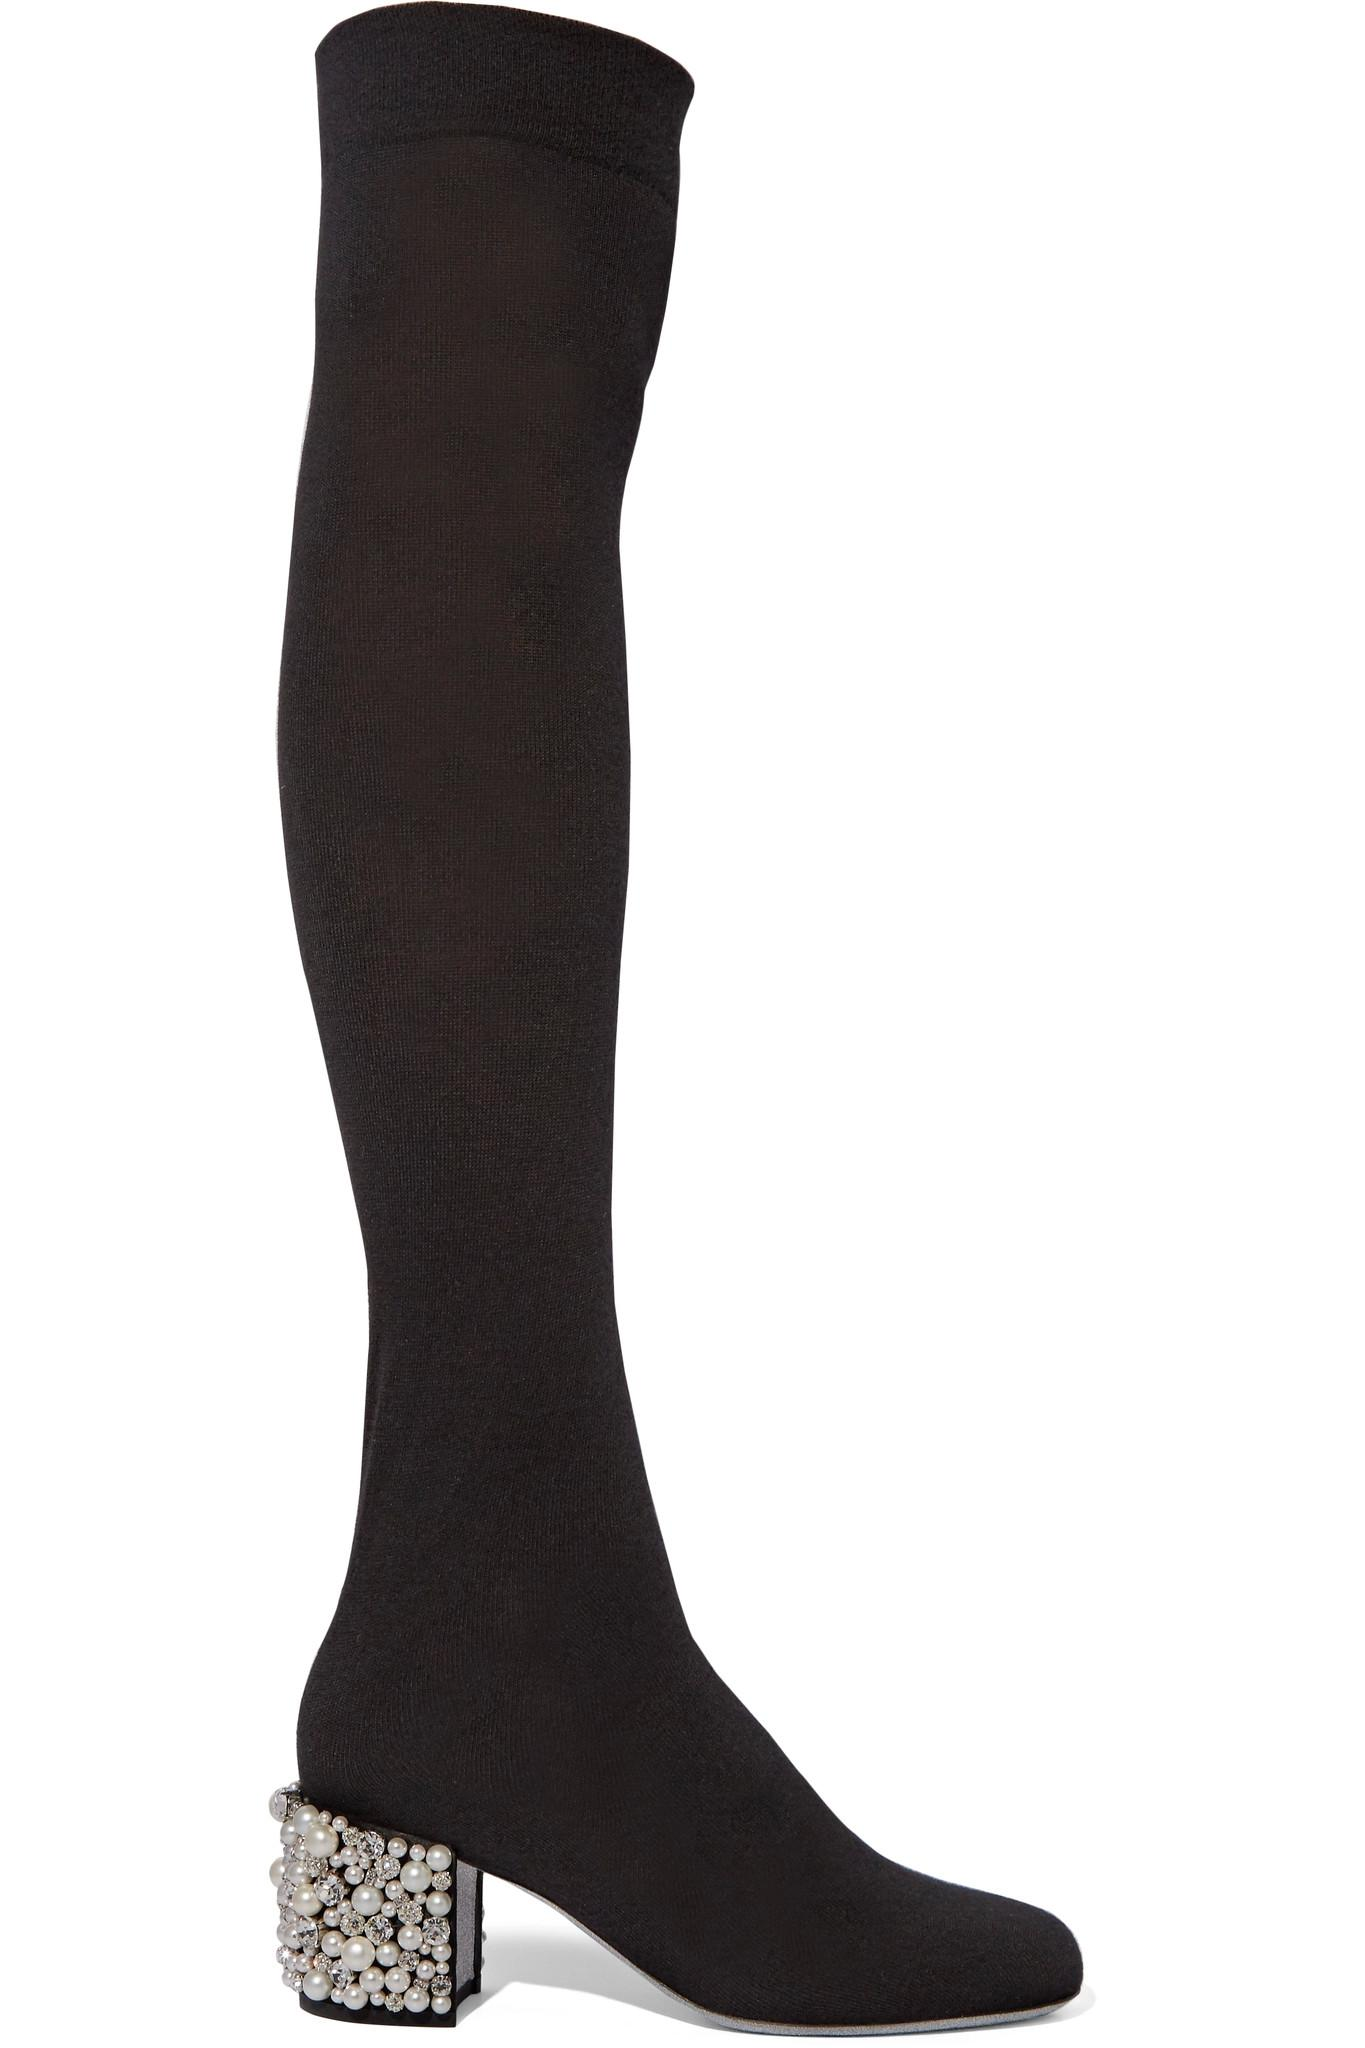 René Caovilla Rene Caovilla Embellished Sock Boots discount for sale recommend cheap online outlet excellent NEpxFegNRw